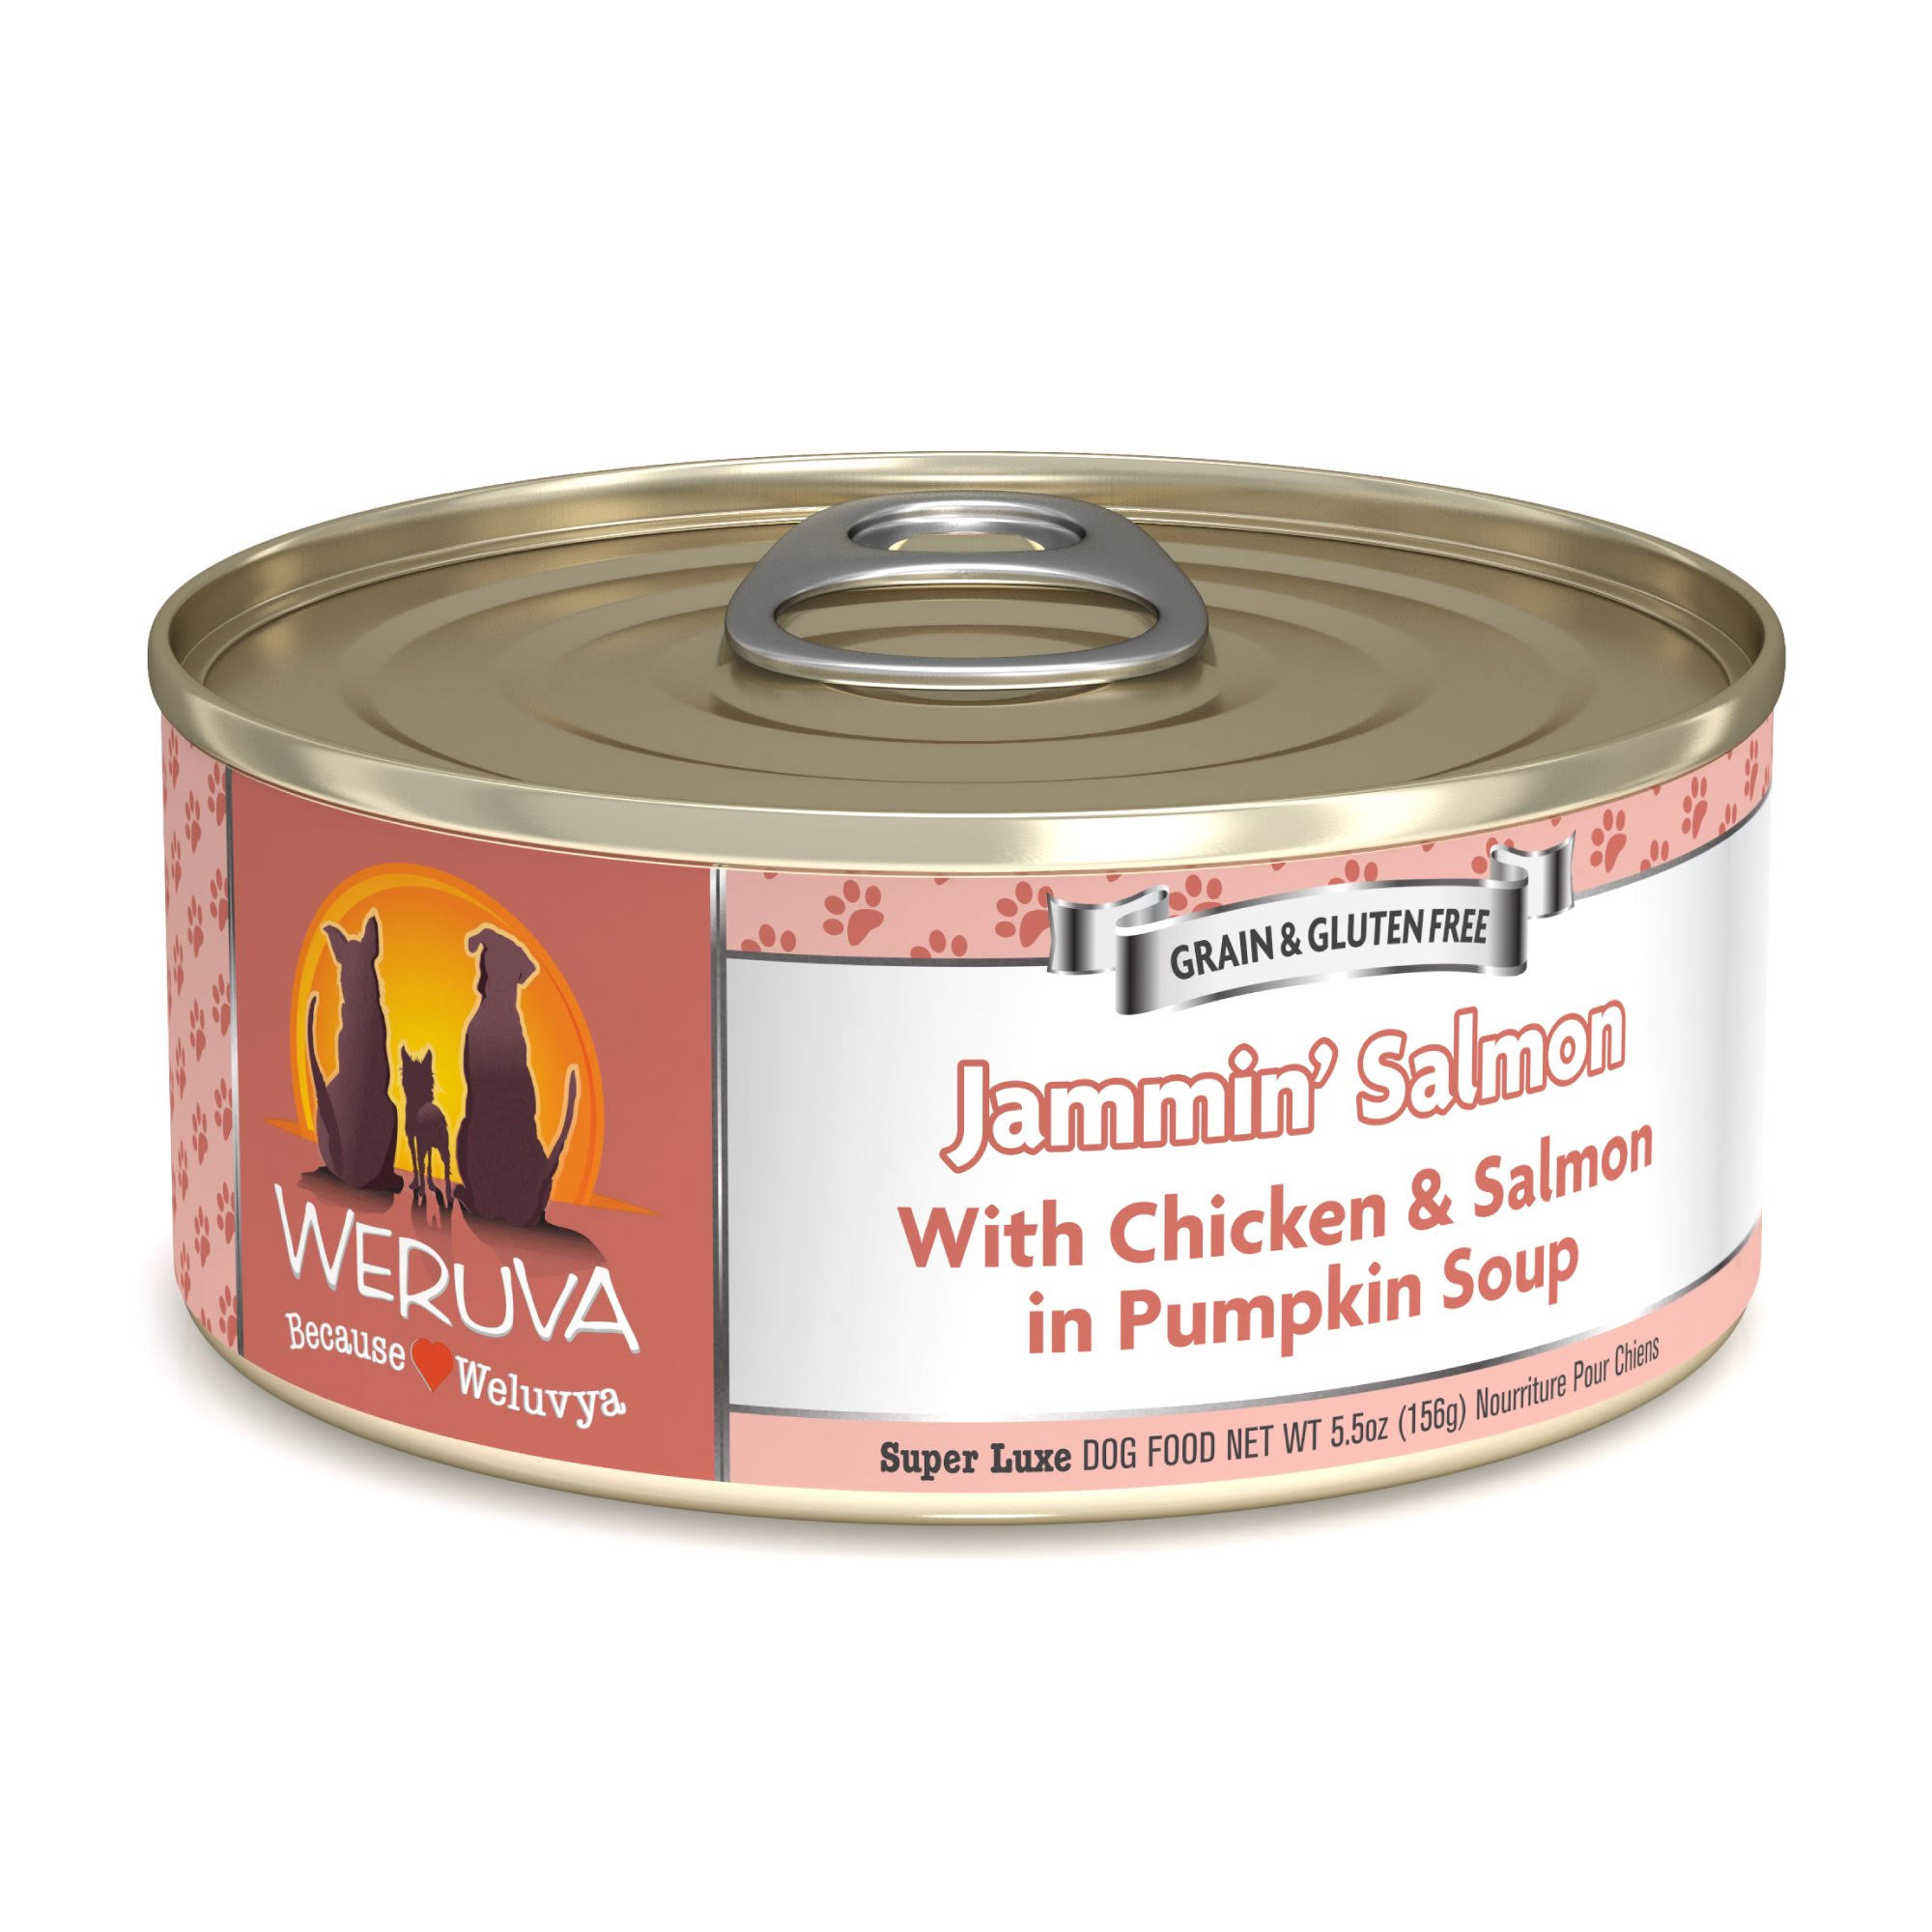 Weruva Jammin' Salmon Dog Food 5.5 oz